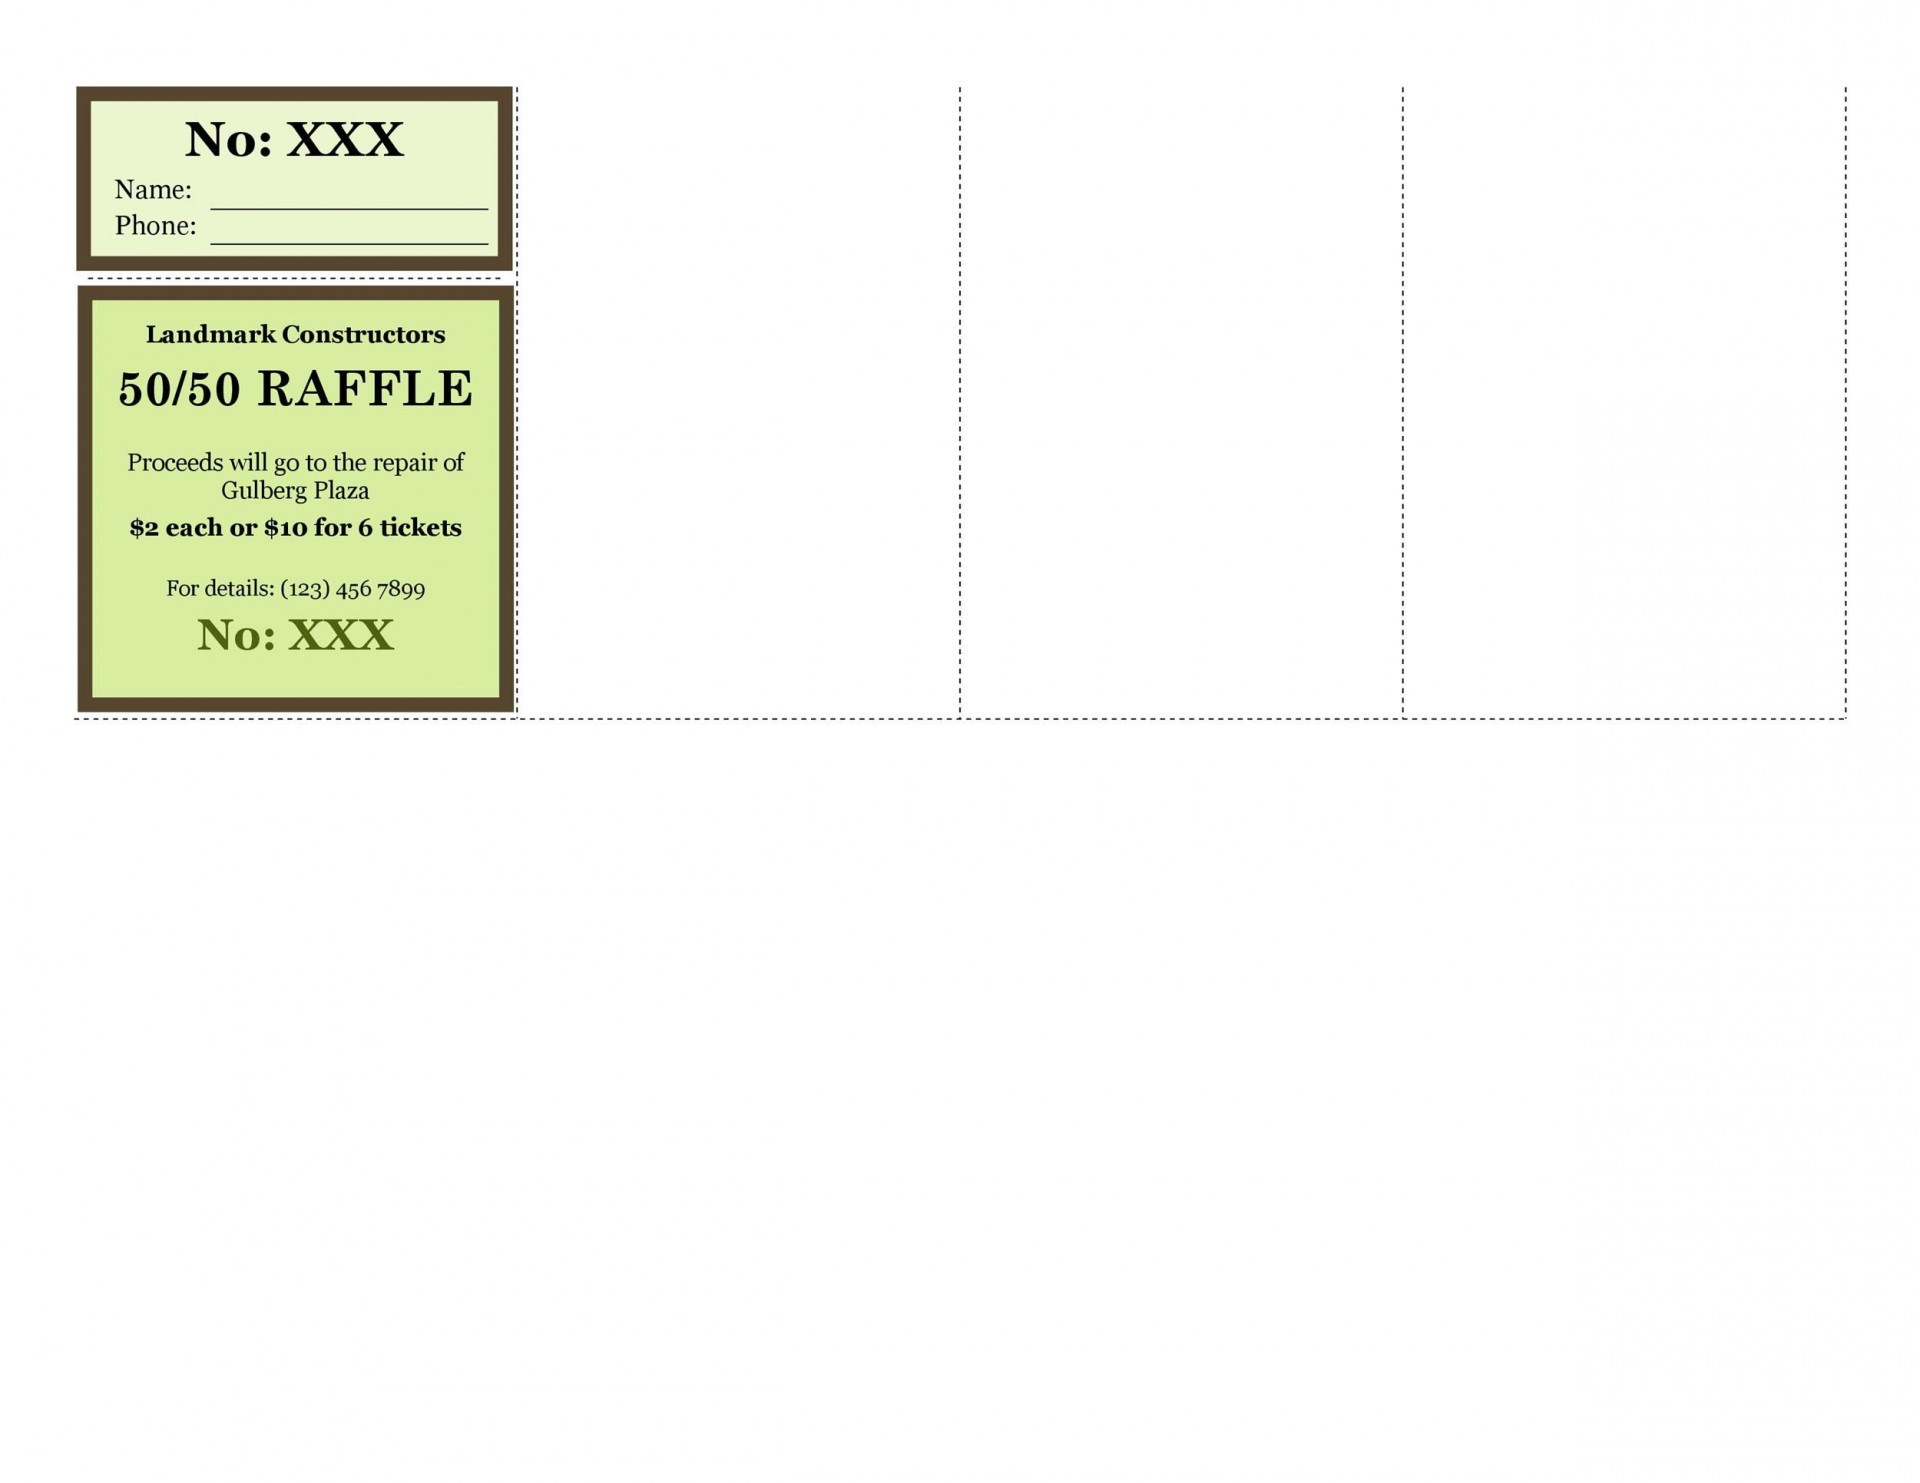 009 Magnificent Raffle Ticket Template Word Picture  8 Per Page Format1920